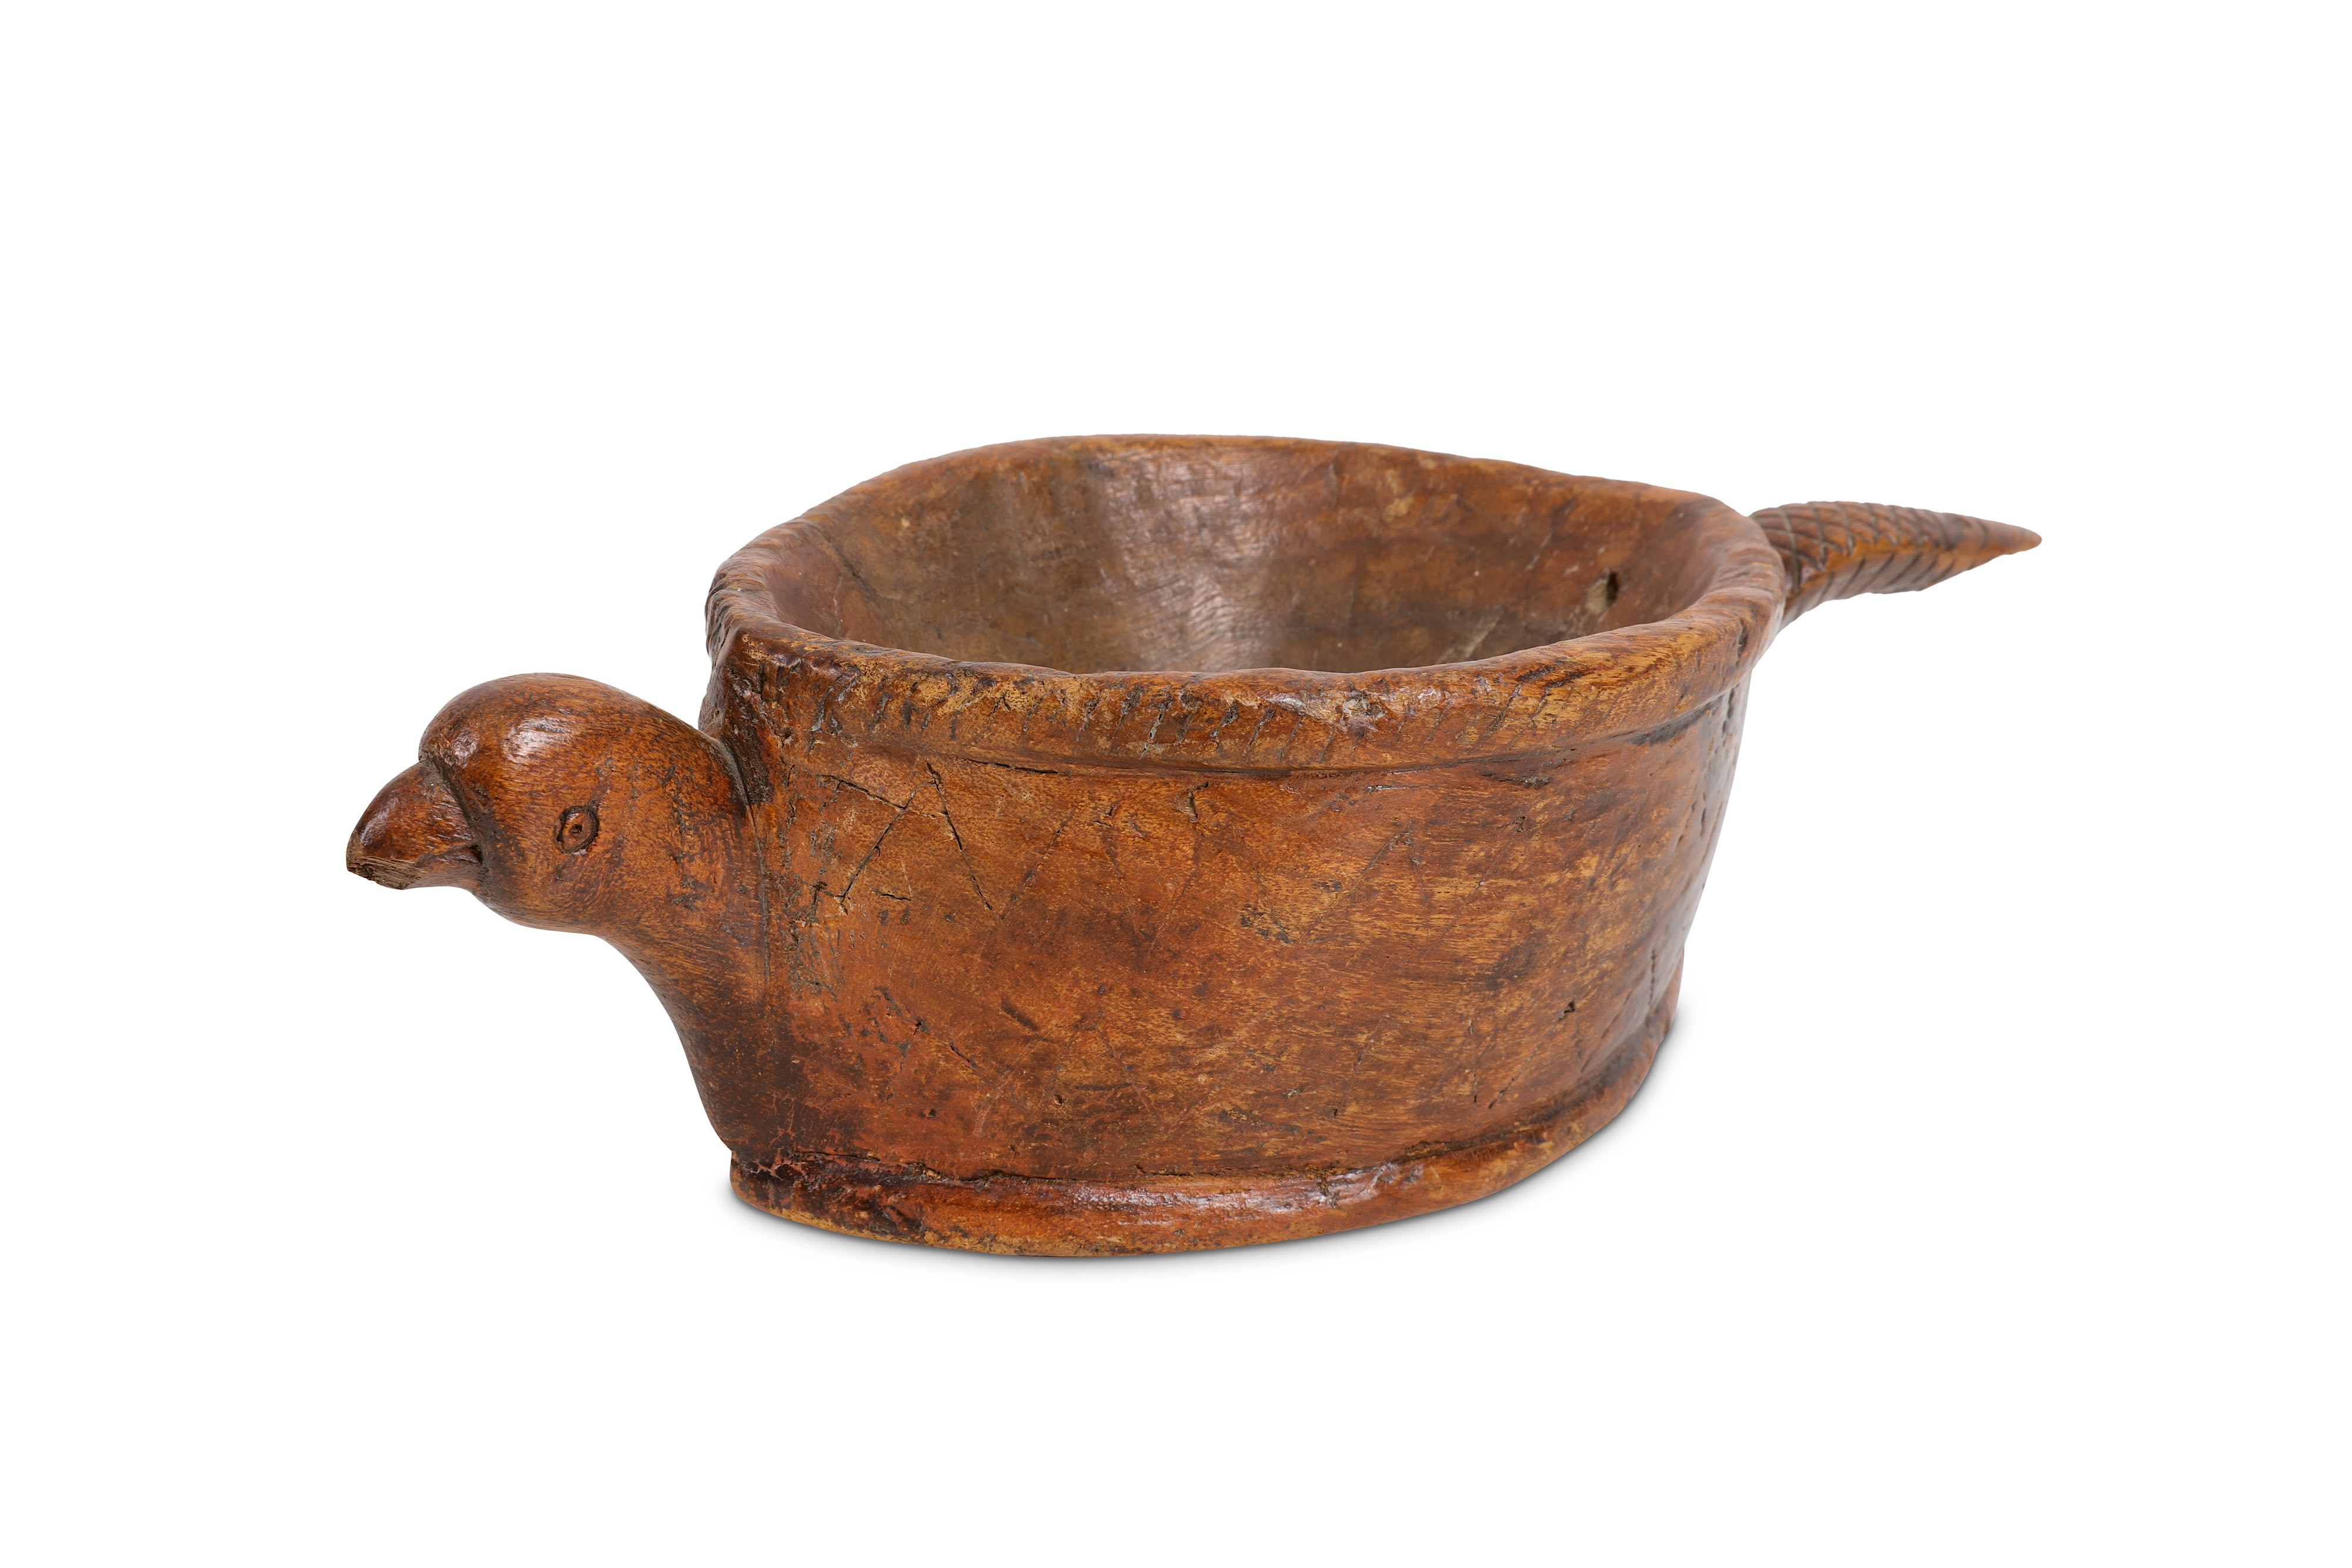 Lot 19 - TREEN: A 19TH CENTURY CONTINENTAL (POSSIBLY SCANDINAVIAN) DRINKING VESSEL IN THE FORM OF AN ARMADILL